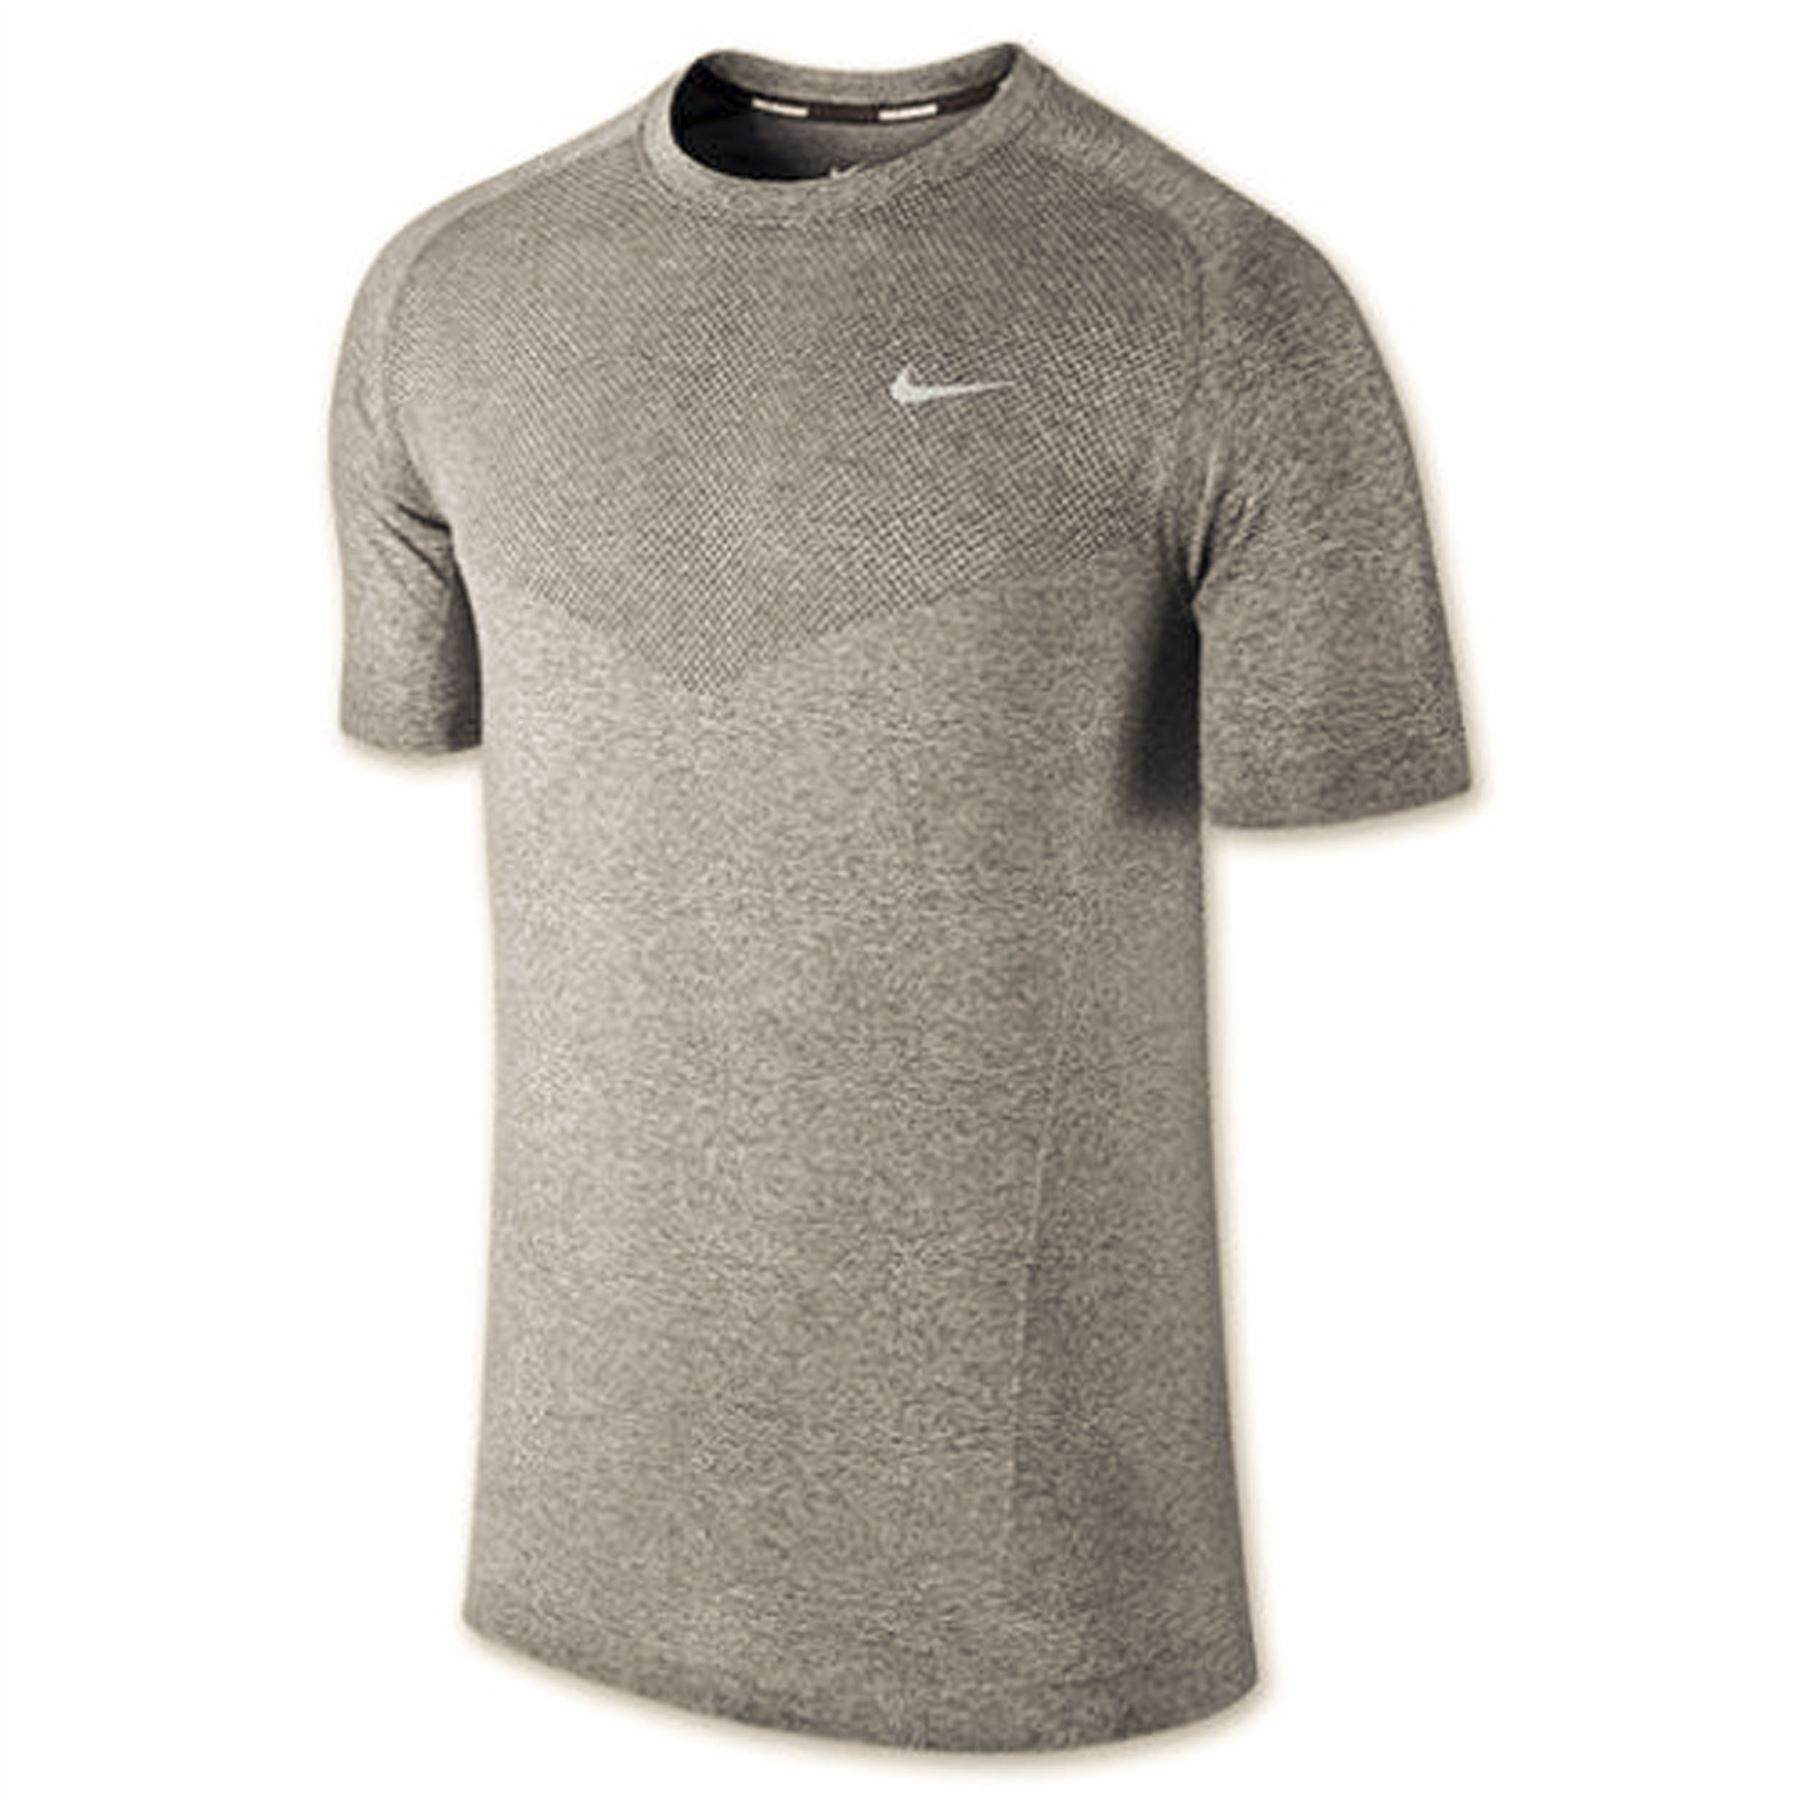 Nike men 39 s dri fit knit short sleeve tee running t shirt for Buy dri fit shirts